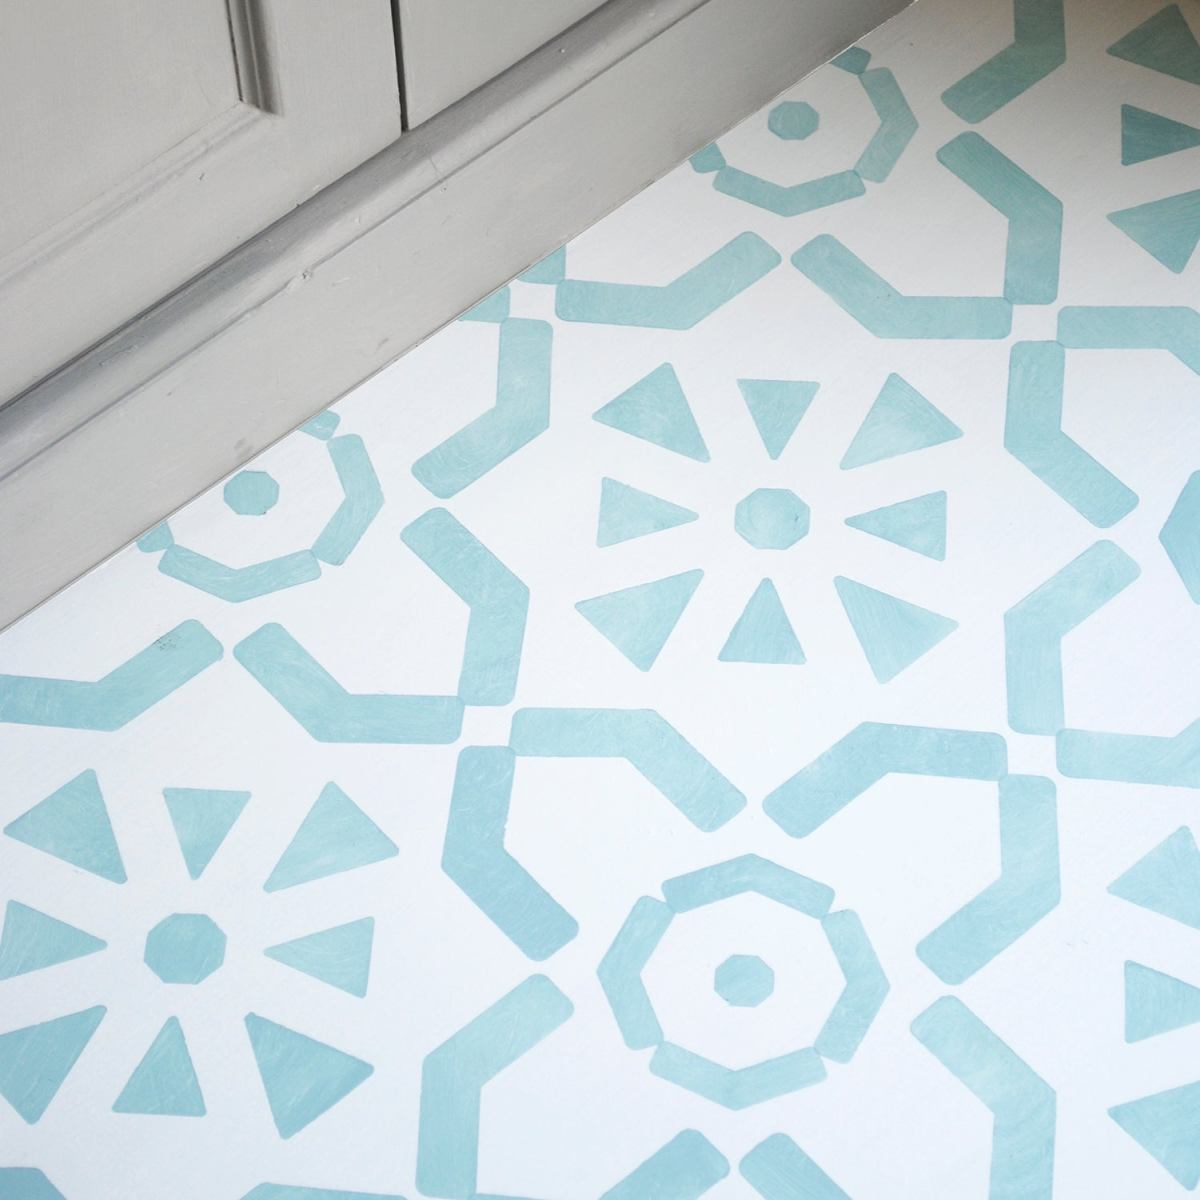 Single Story Home Design Large Ronda Floor Stencil / Nicolette Tabram